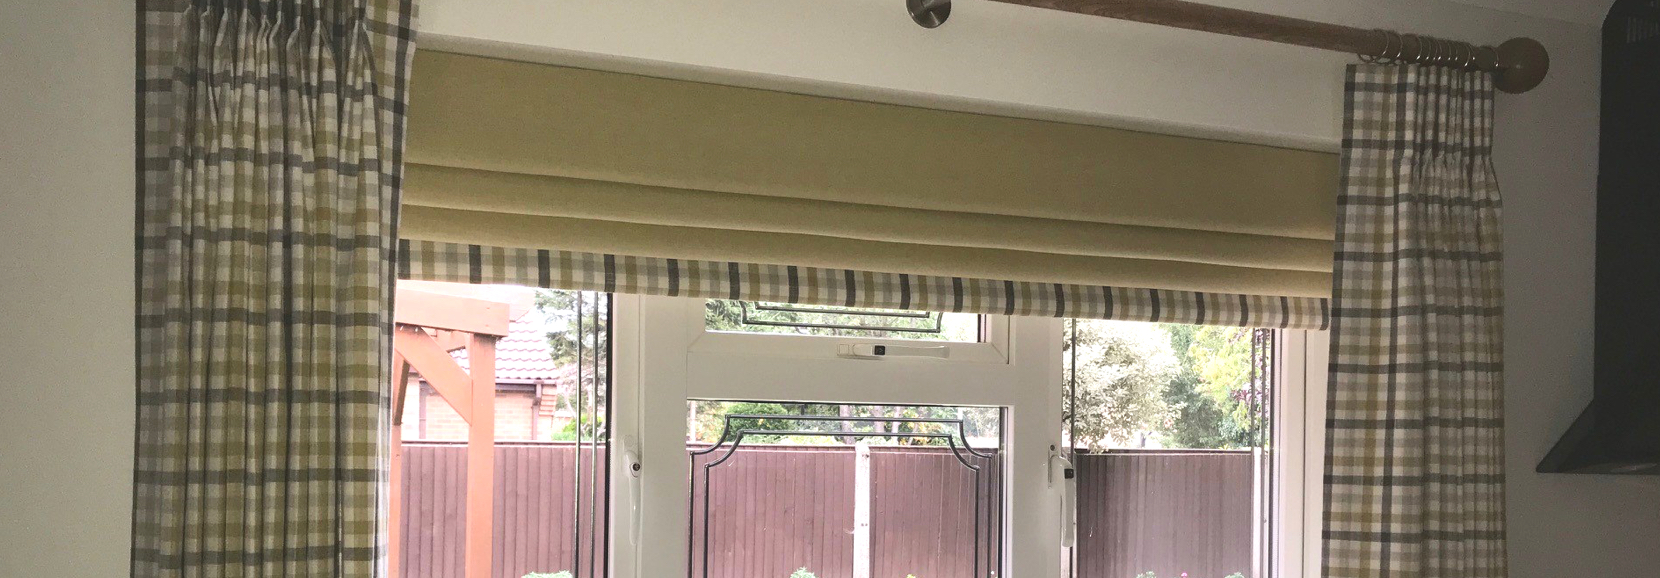 image of blinds and a window